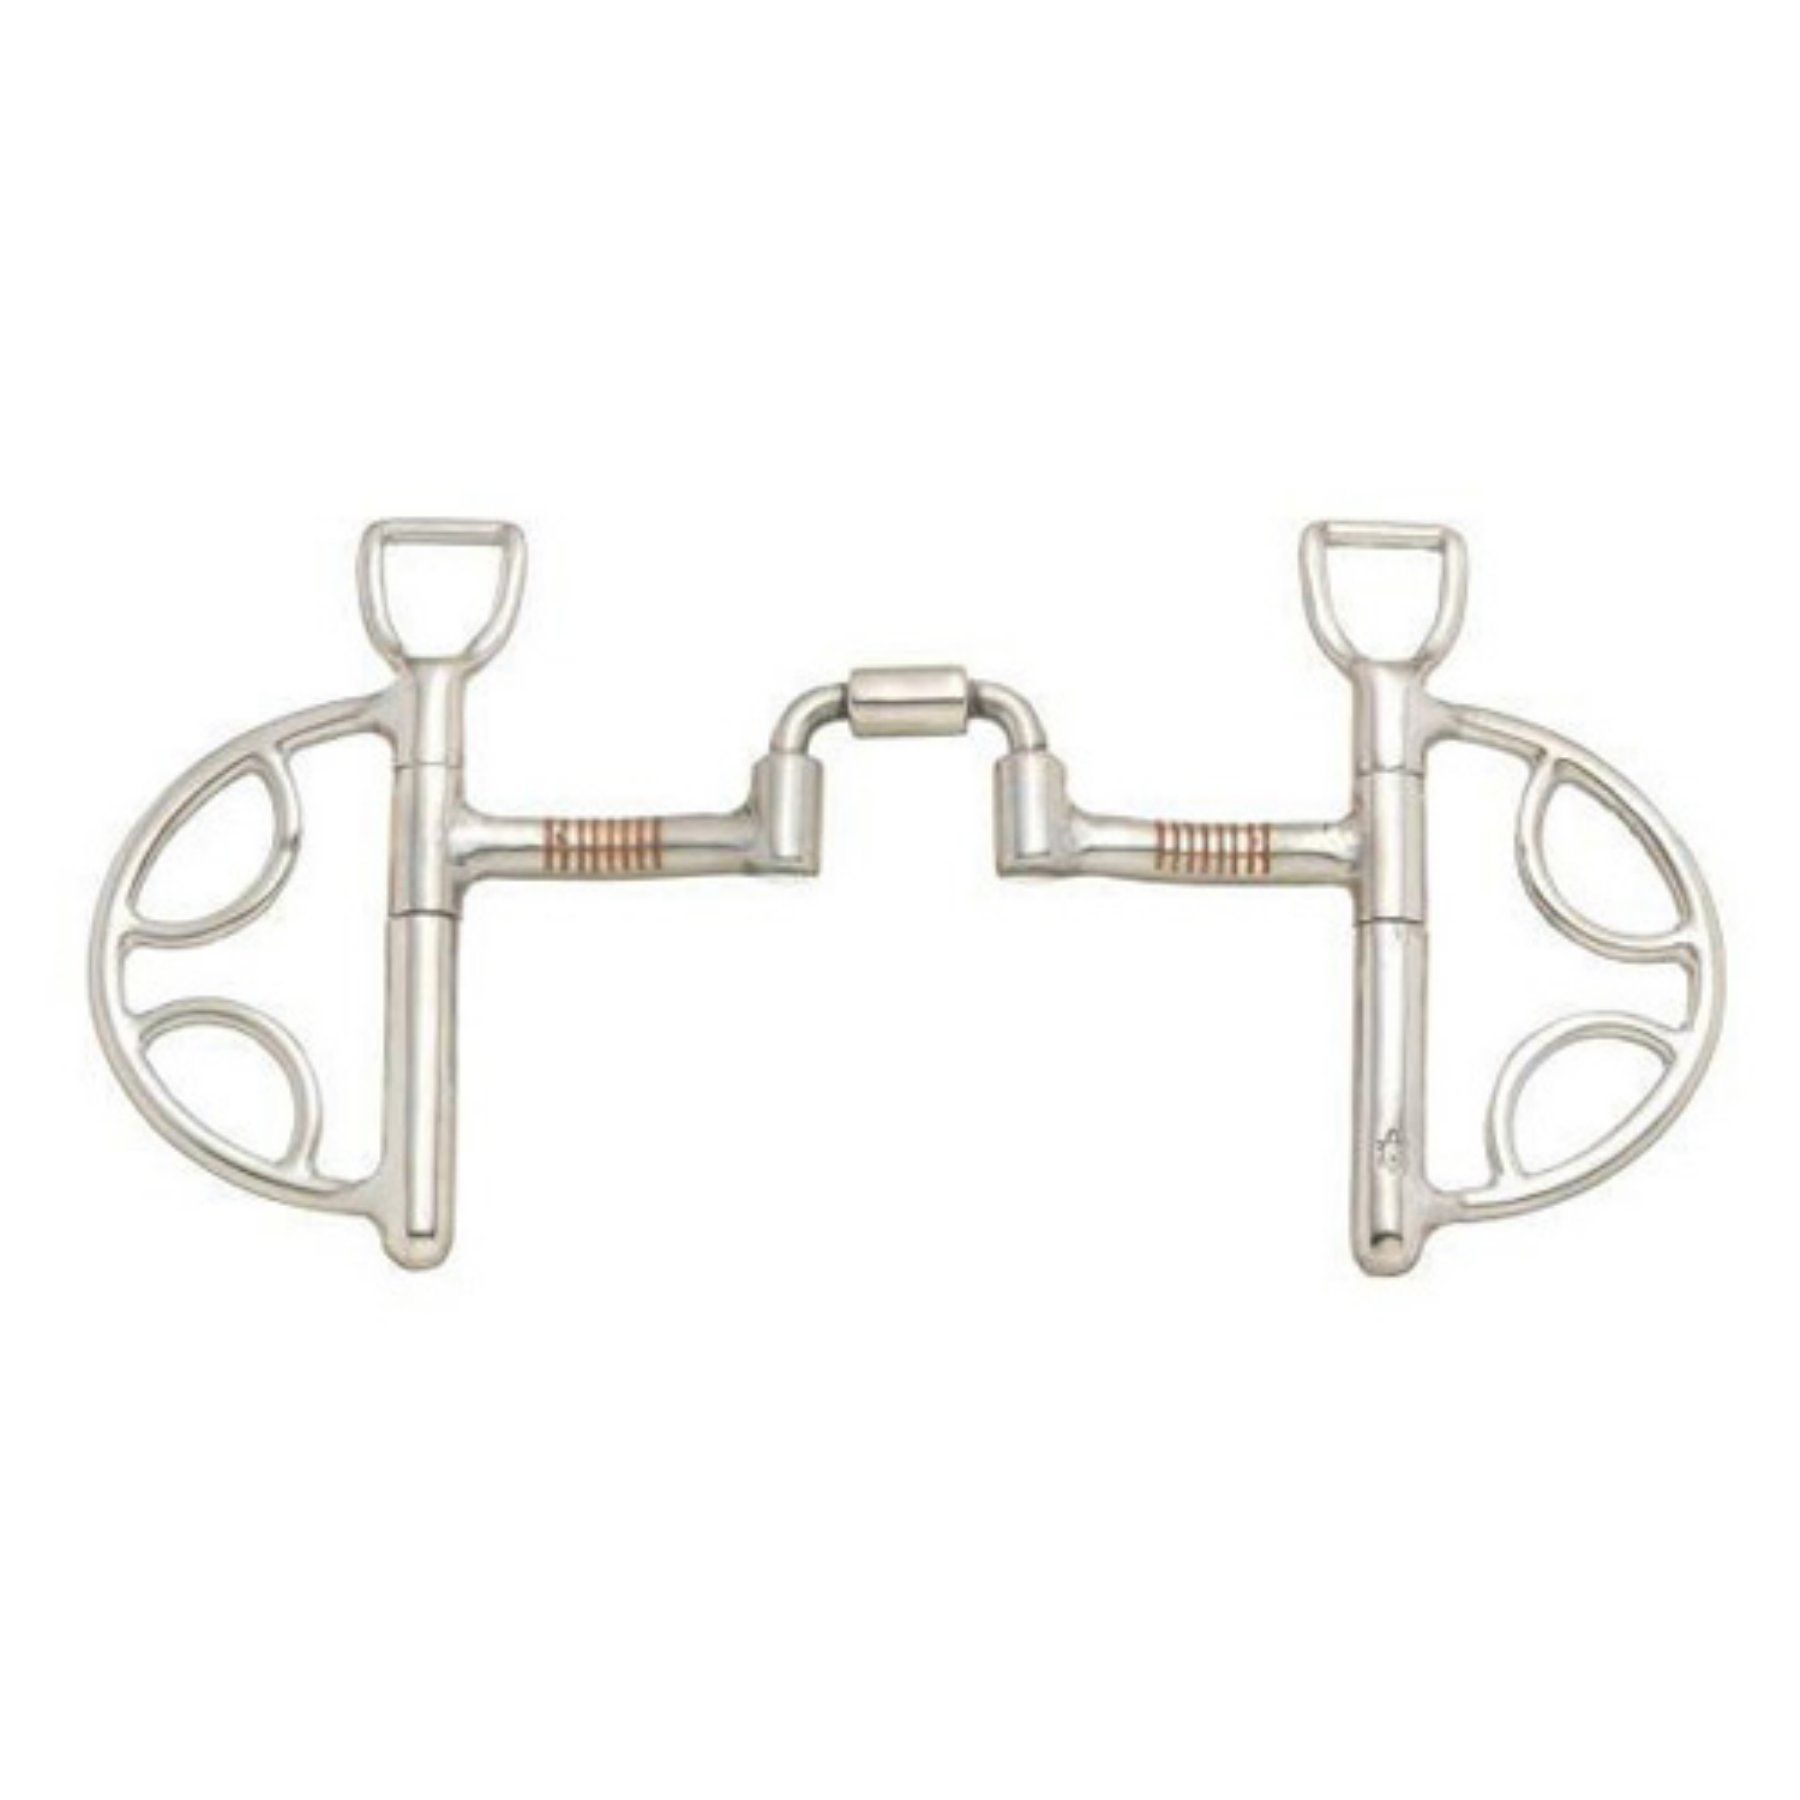 """Kelly Silver Star Mullen Mouth Reining Horse Bit 5/"""" mouth Stainless Steel"""